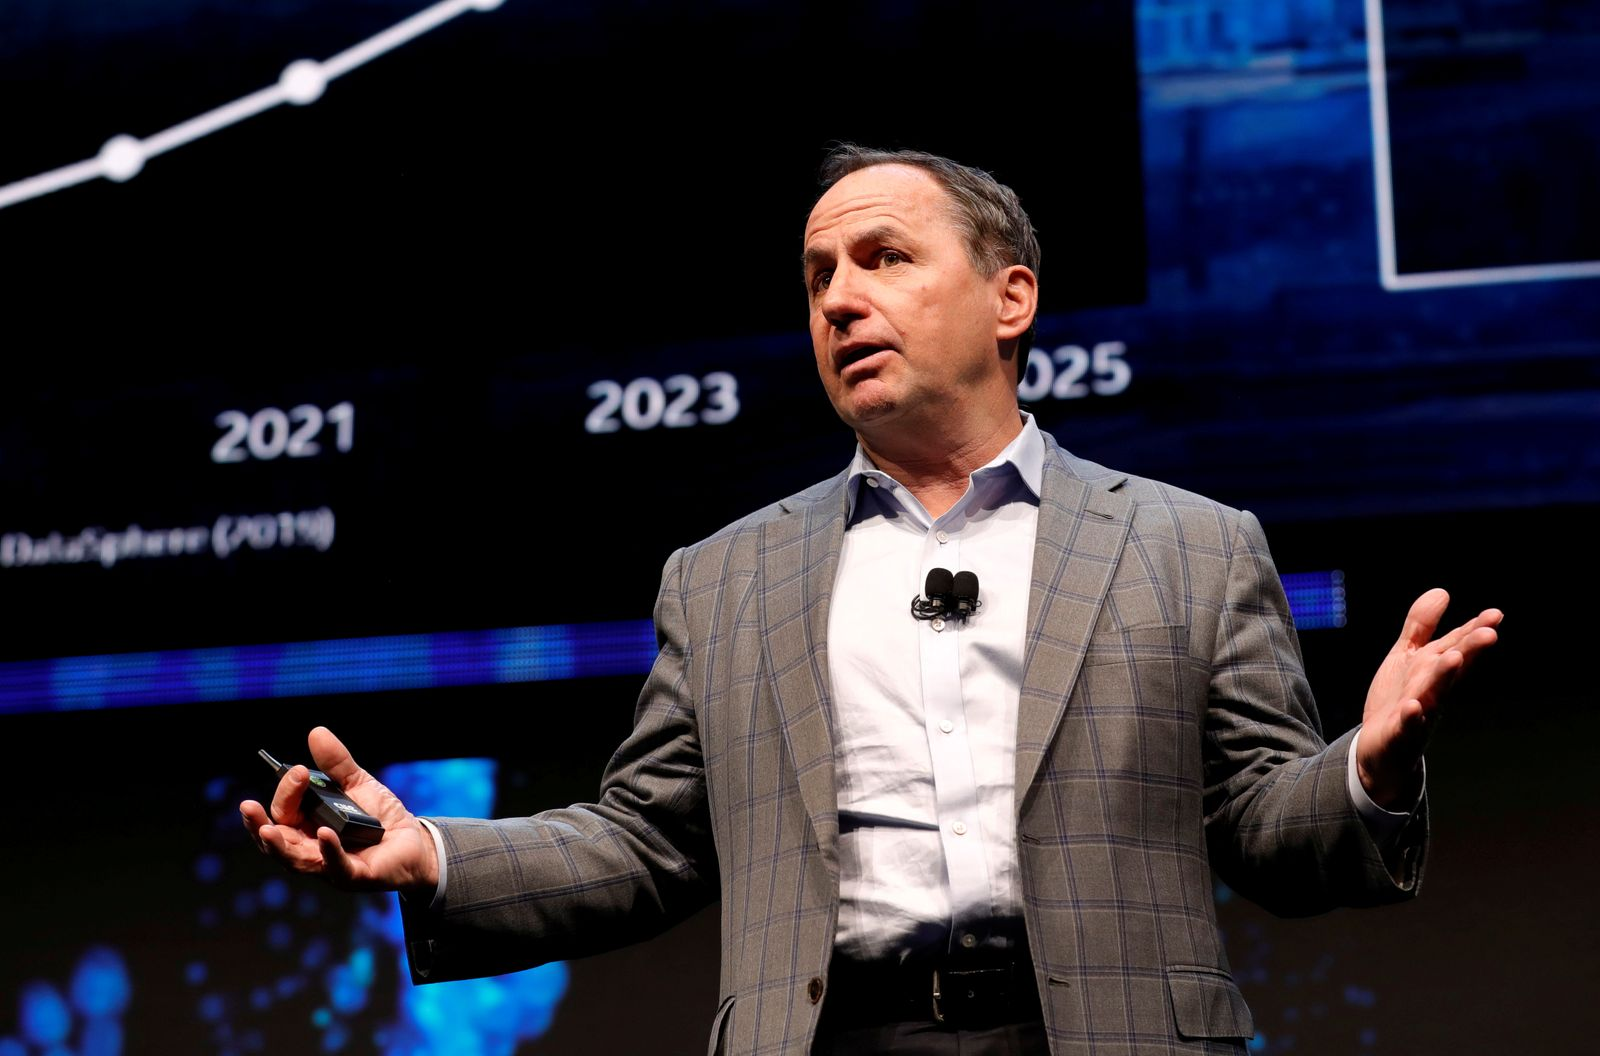 FILE PHOTO: Intel CEO Bob Swan speaks at an Intel news conference during the 2020 CES in Las Vegas